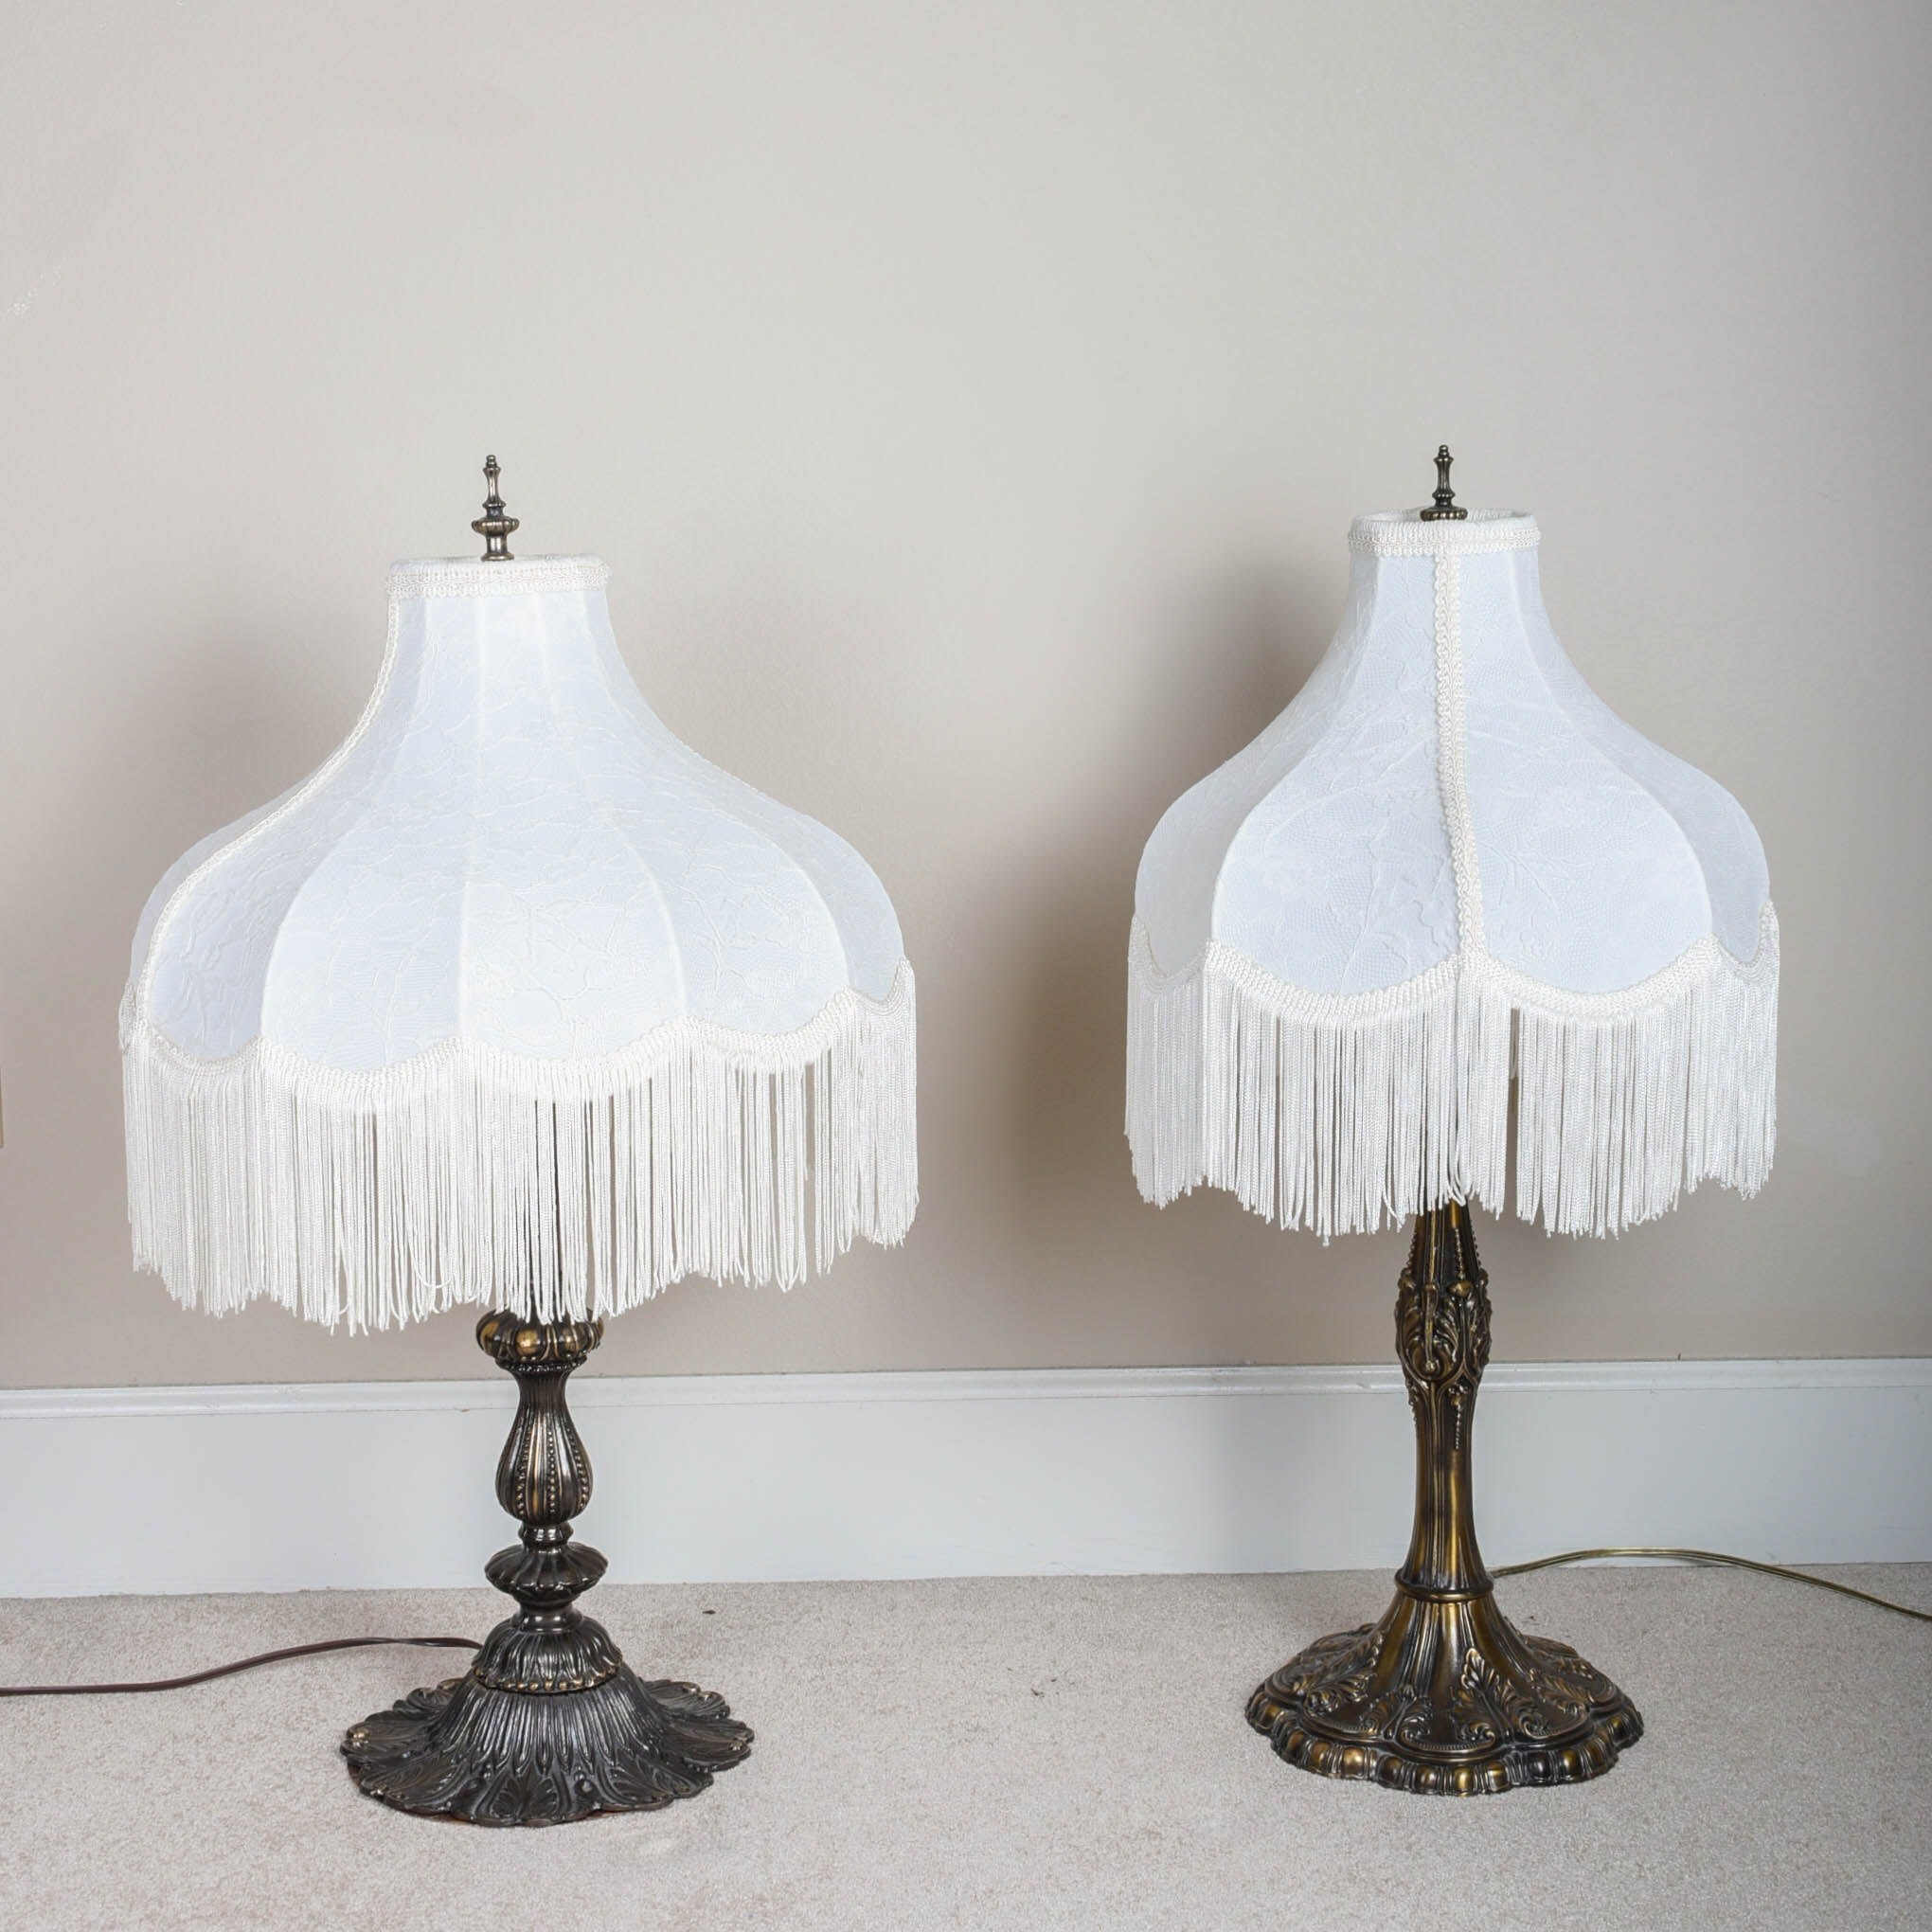 Pair of Decorative Victorian-Style Table Lamps